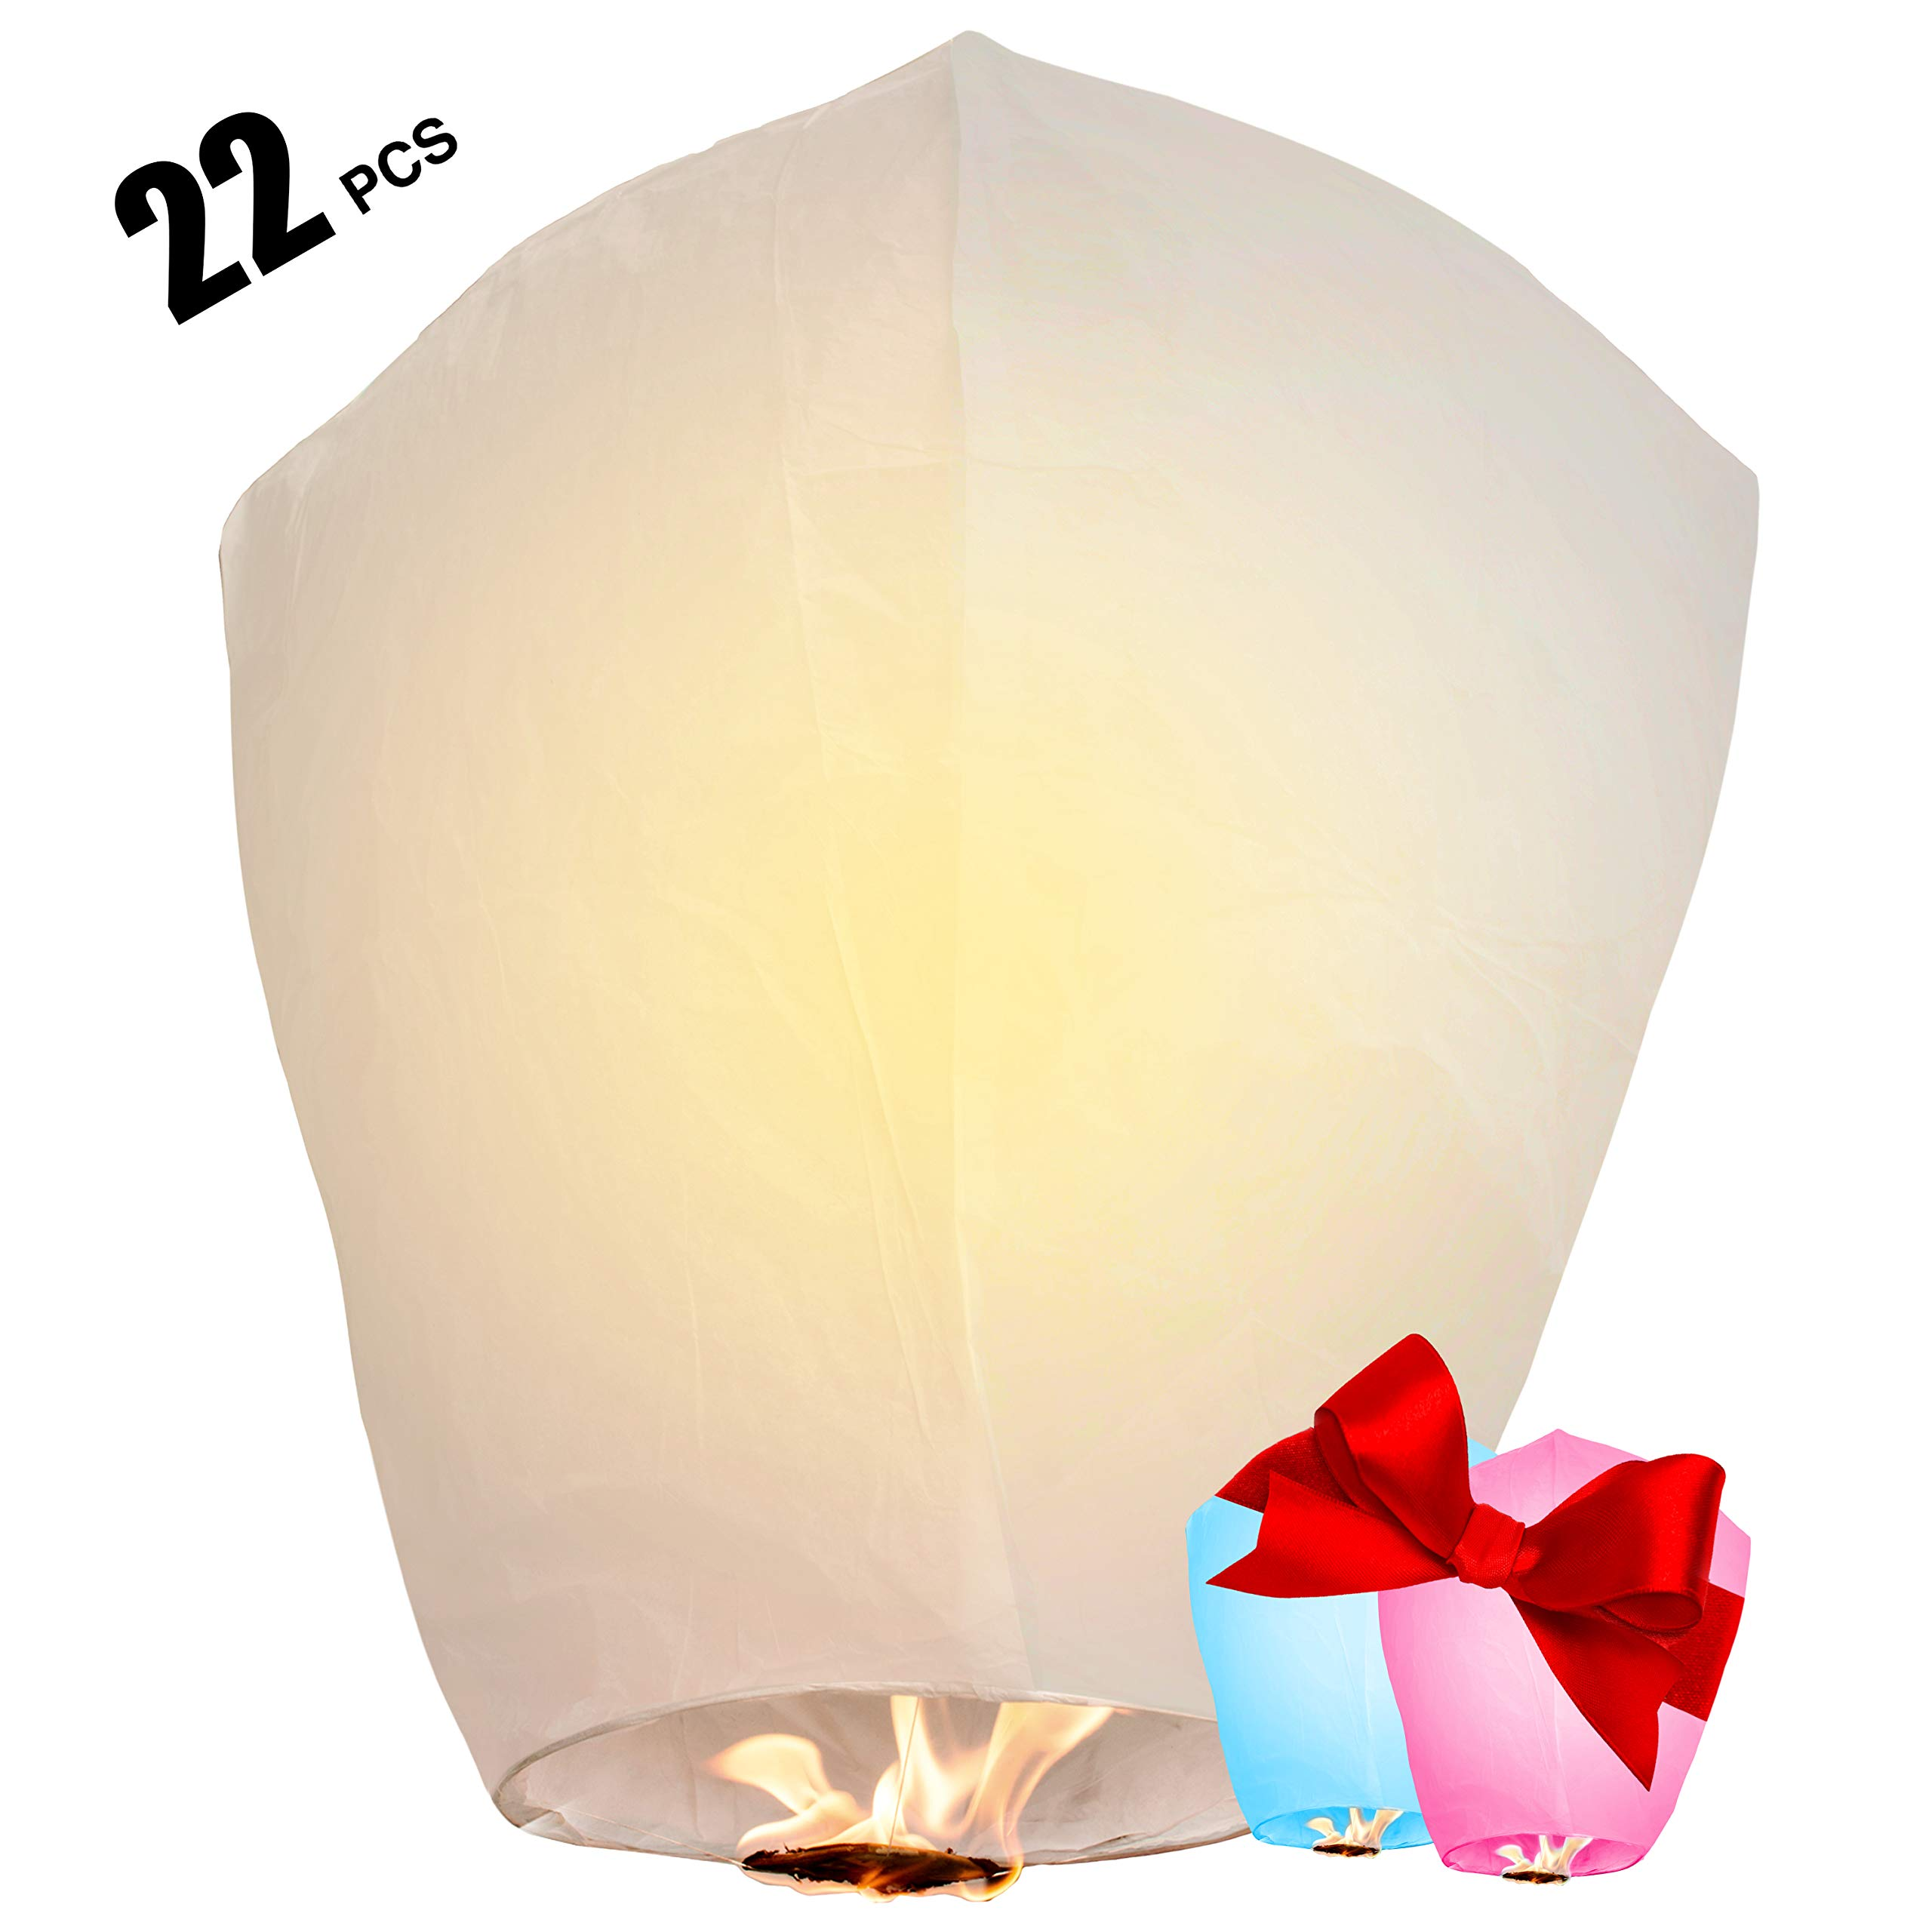 Chinese Lanterns 22-Pack - 100% Biodegradable, Paper Lantern - Japanese Lantern for Weddings, Celebrations, Memorial Ceremonies - White Wish Lanterns, 2 Bonus Colourful Lanterns Blue & Pink